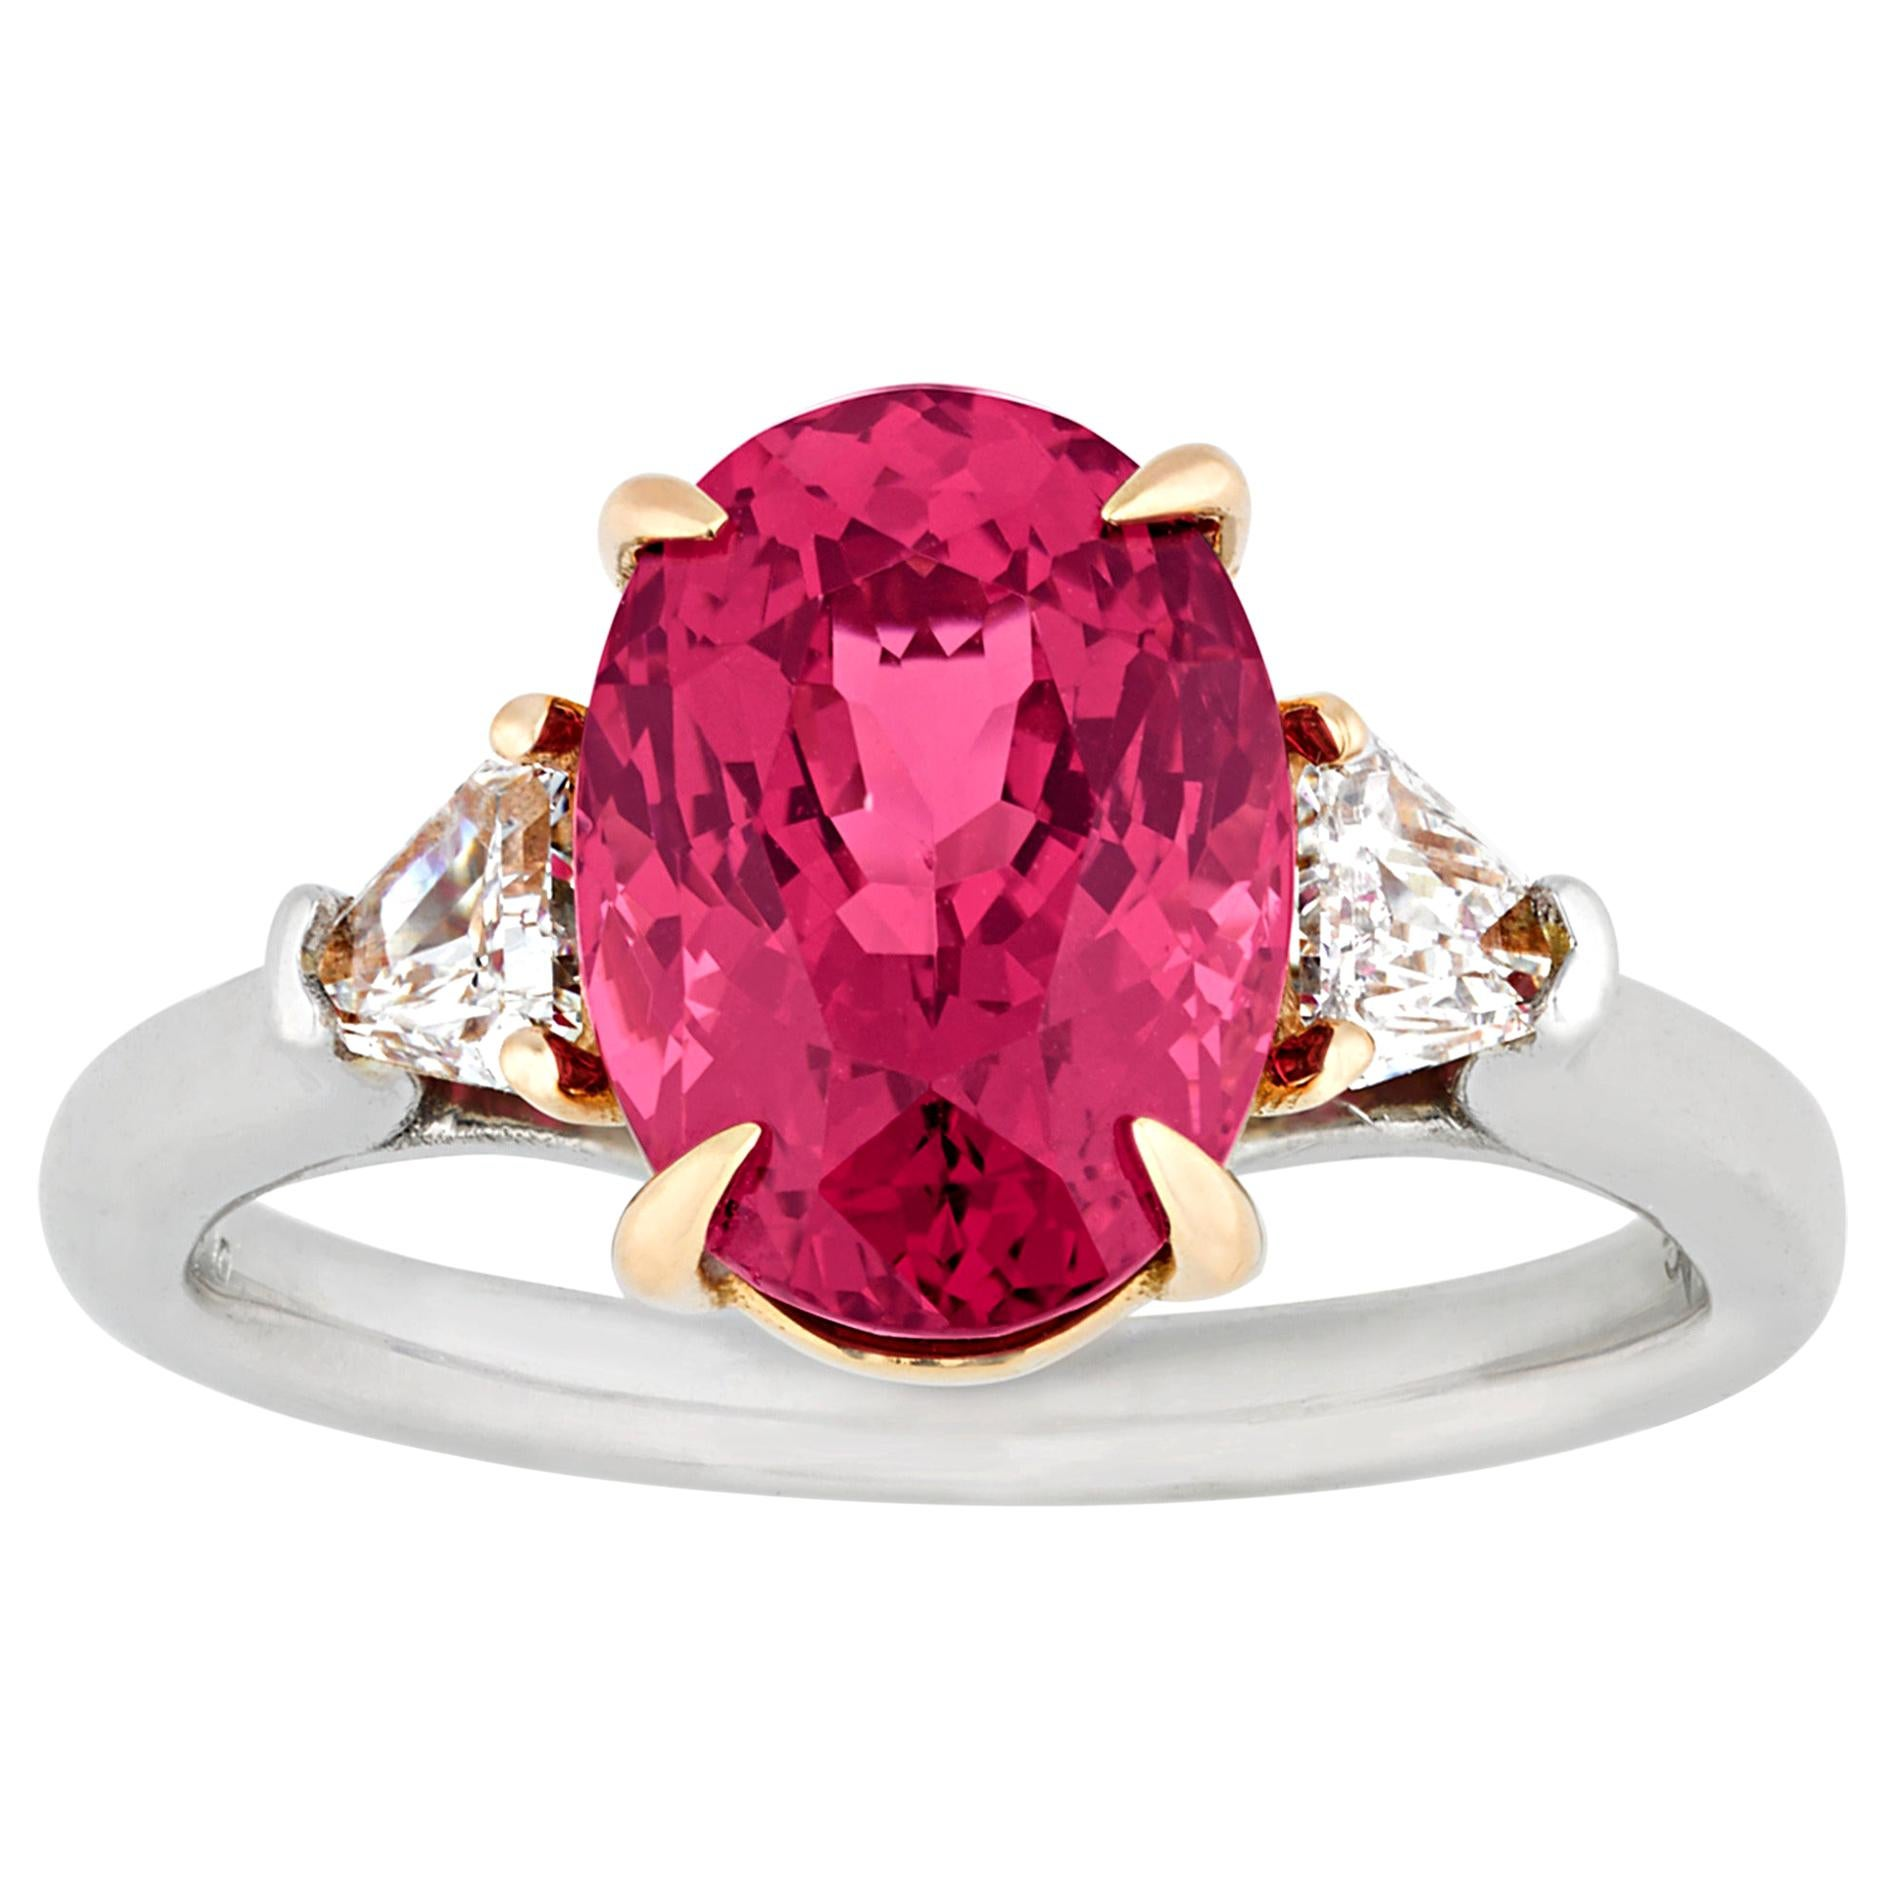 Untreated Red Spinel Ring, 4.07 Carat